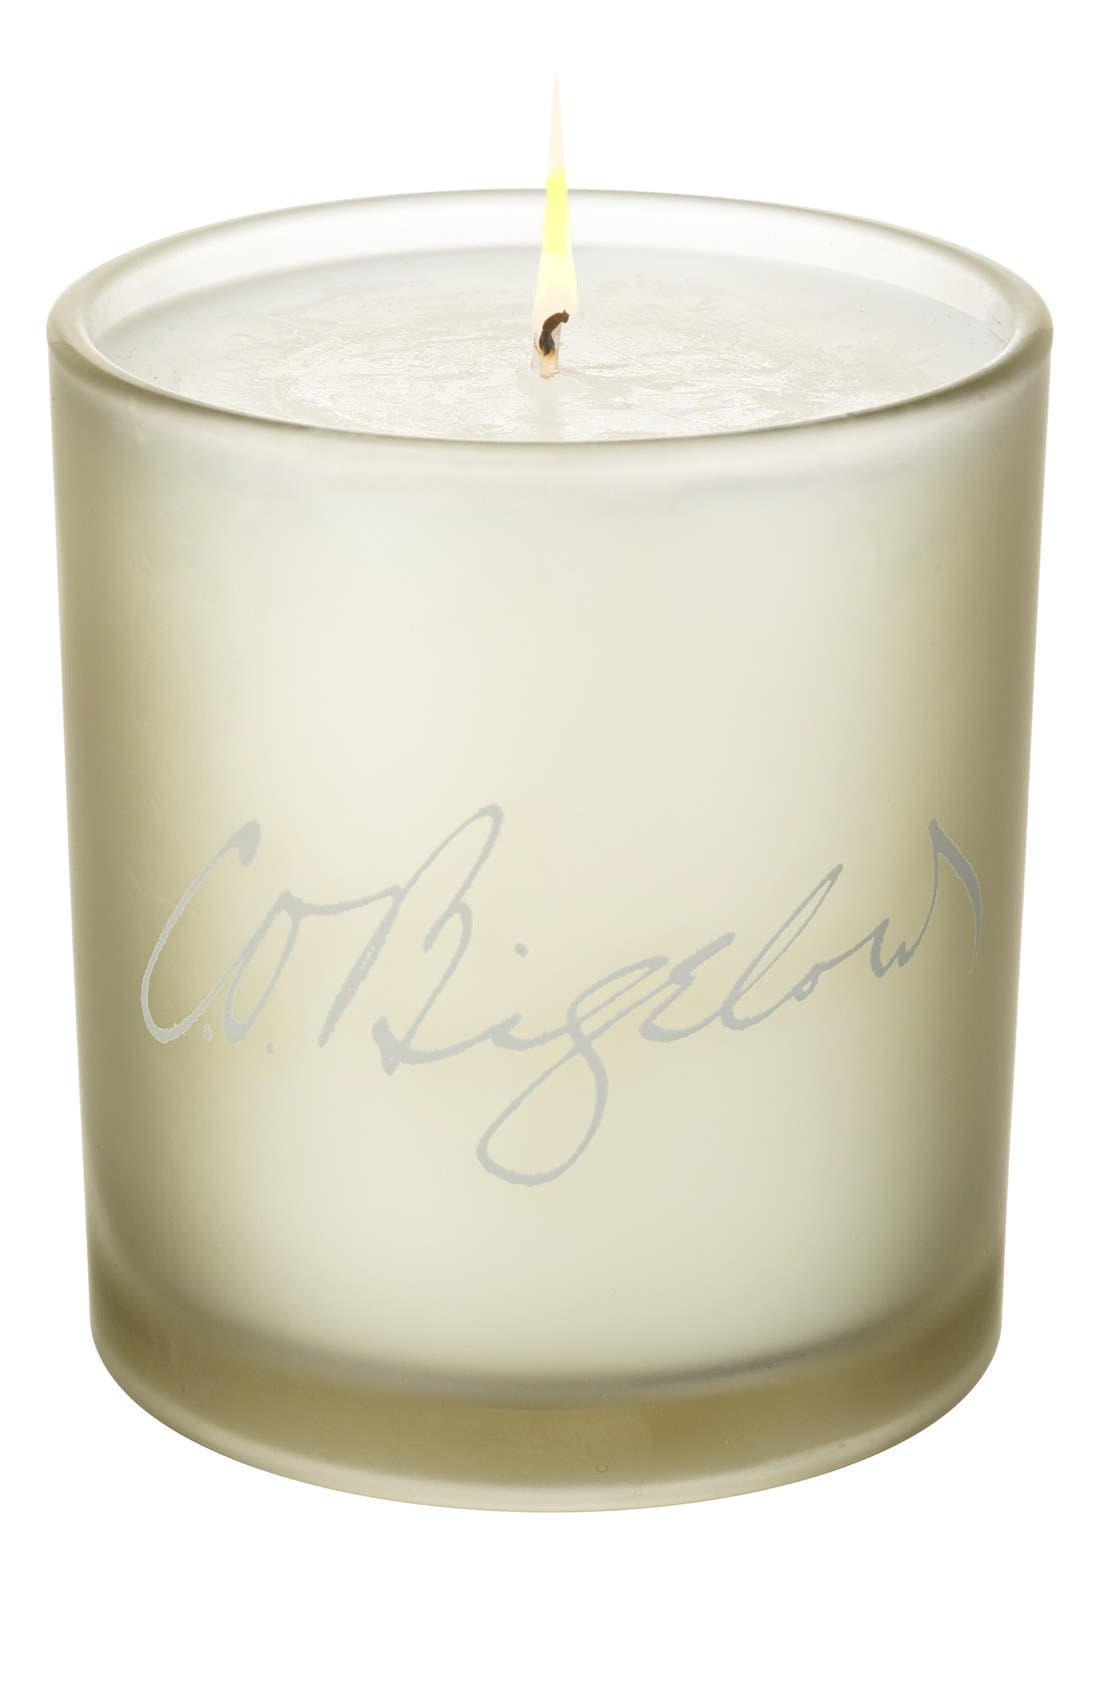 Image of C.O. BIGELOW Candle - Neroli